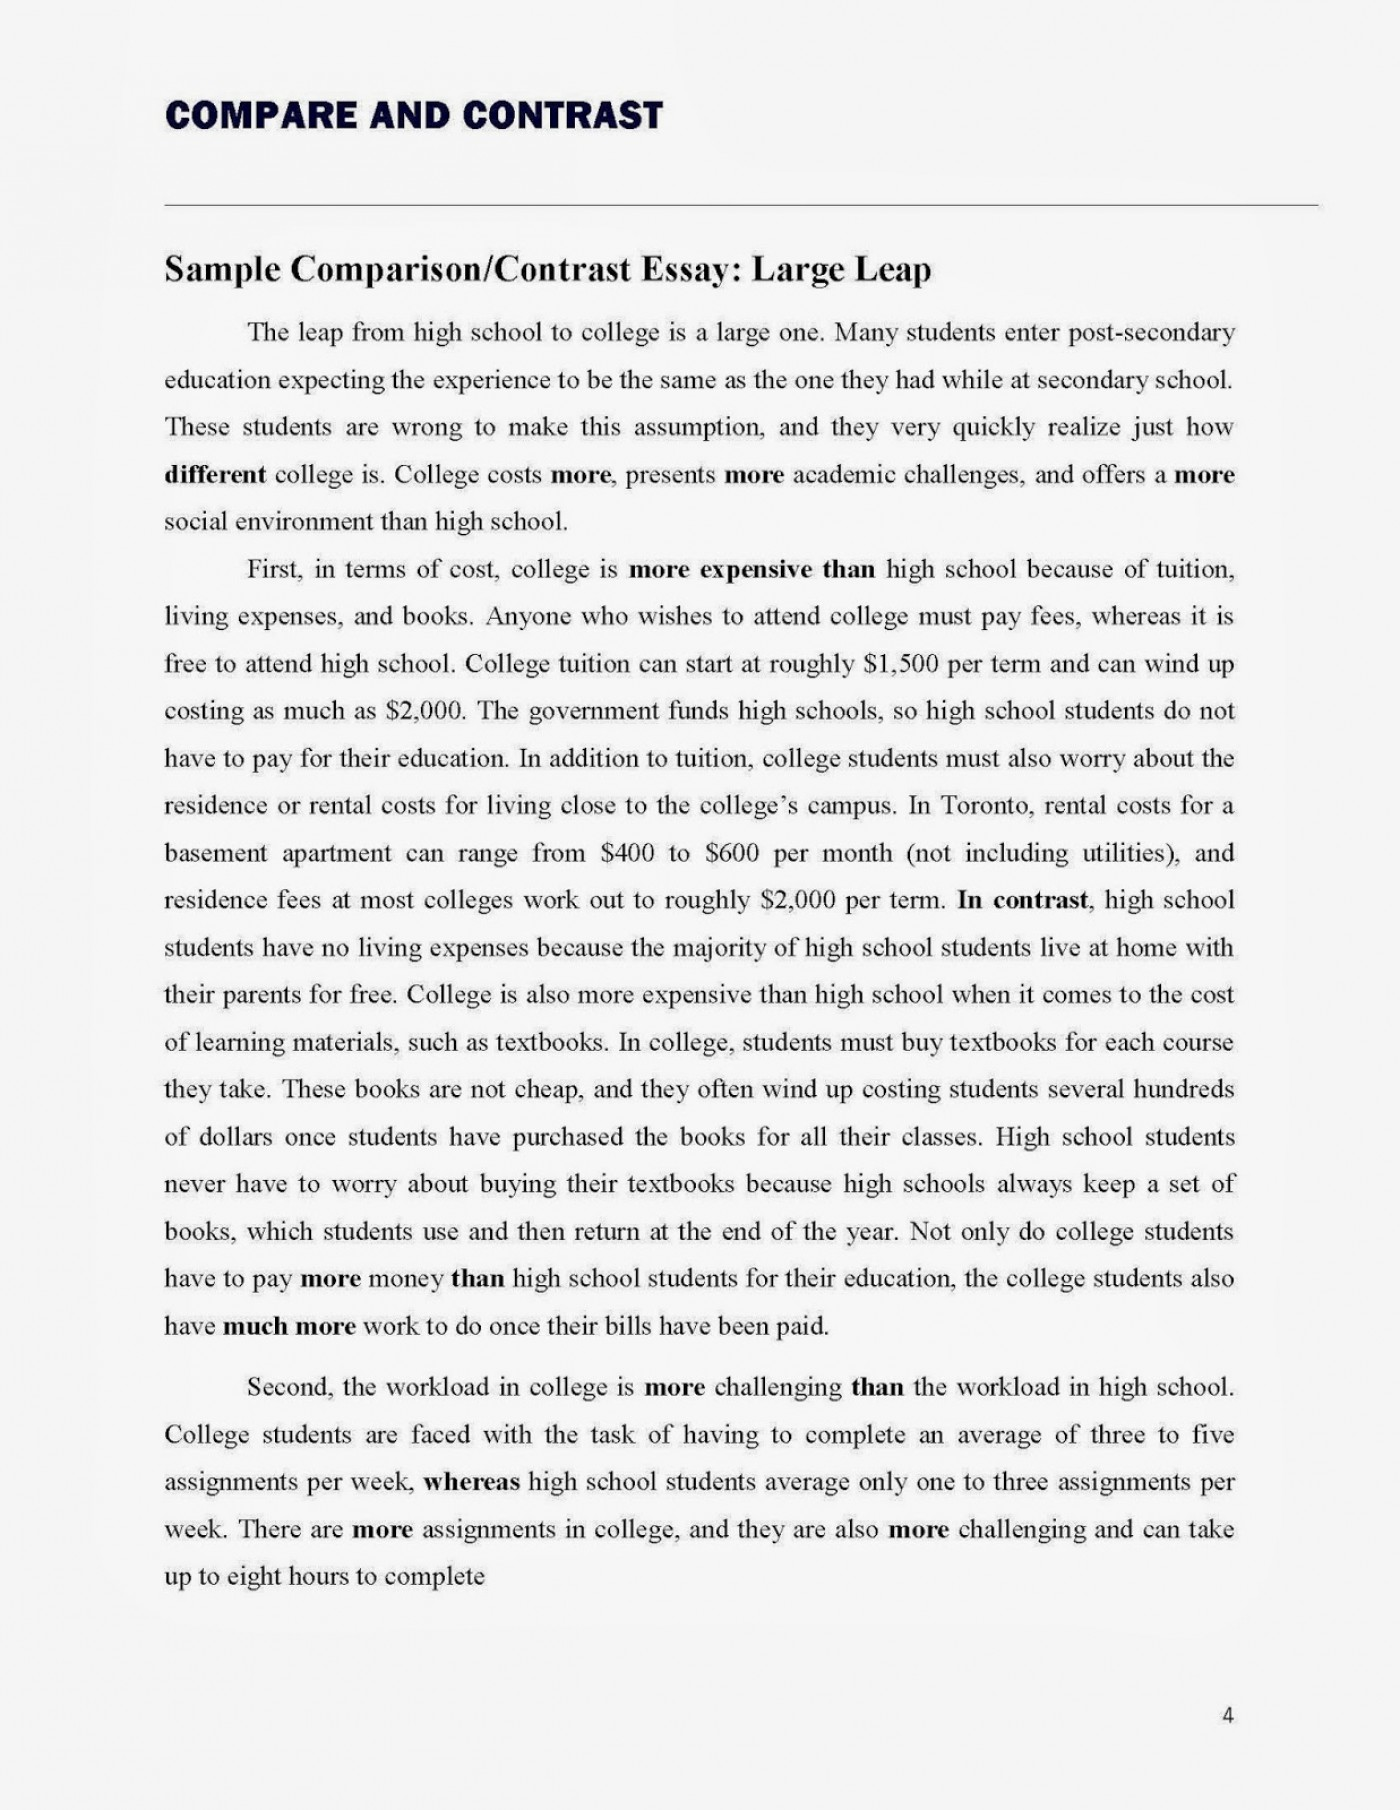 003 Comparison And Contrast Essay Topics Compare20and20contrast20essay Page 4 Unforgettable For High School Compare Prompts Middle 1400